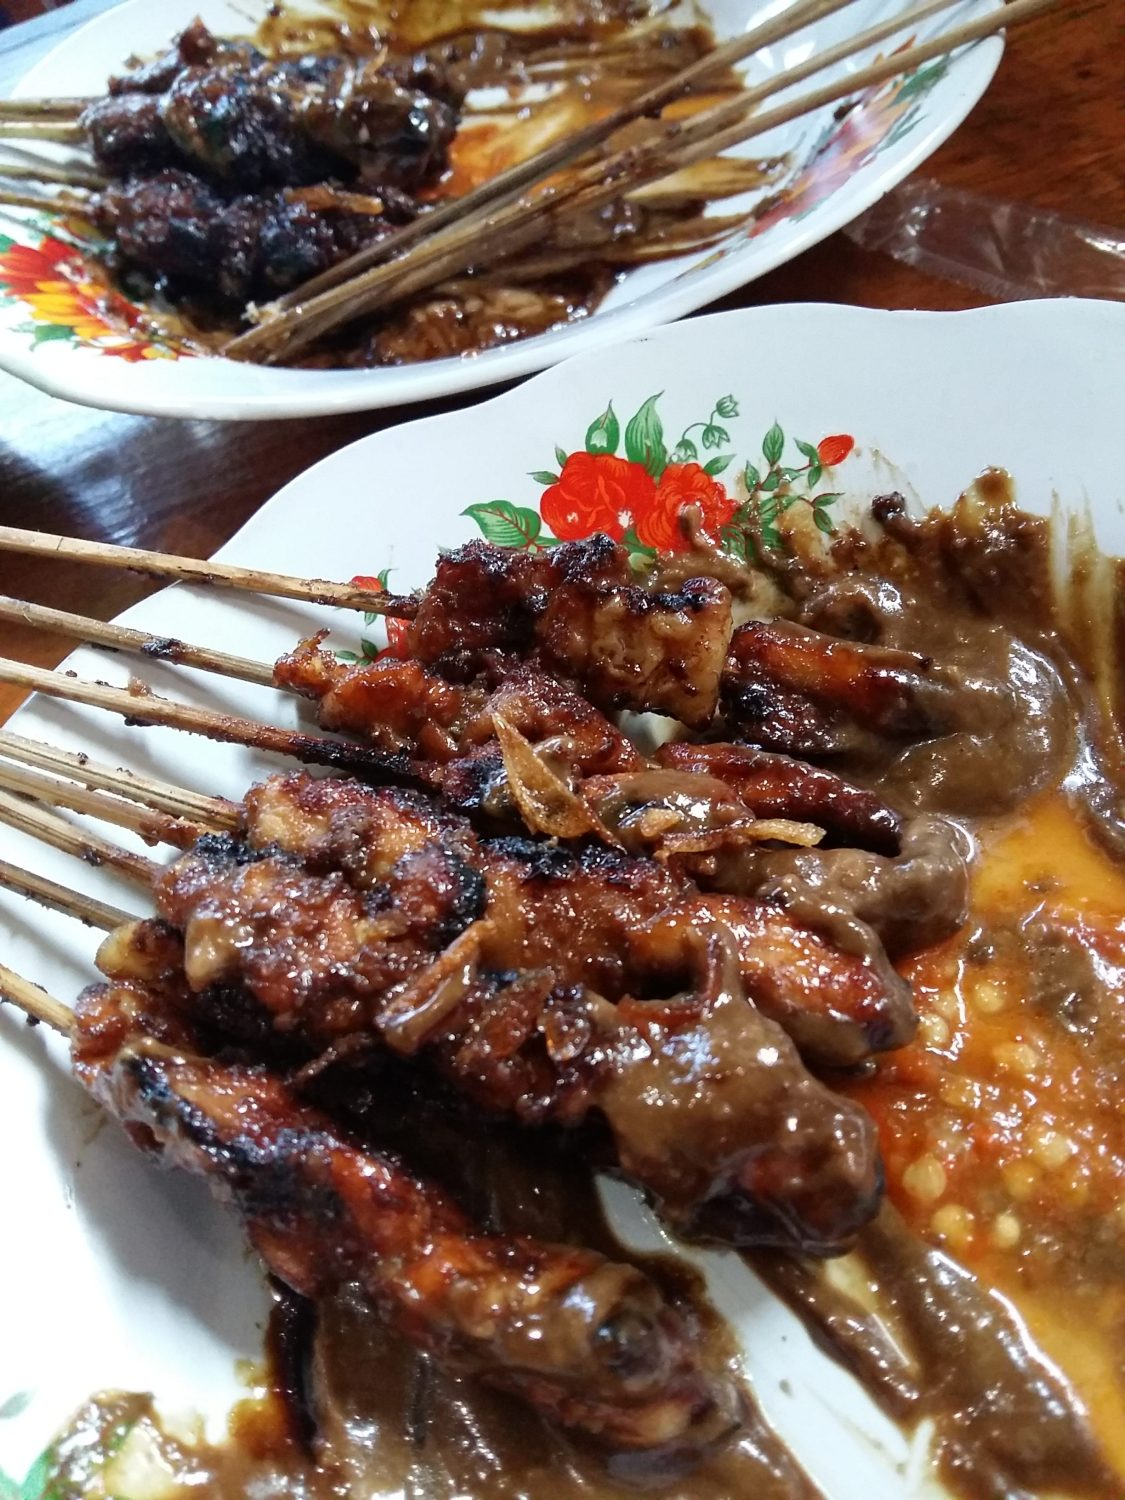 Chicken and Beef Satay found in popular streets of Jakarta.